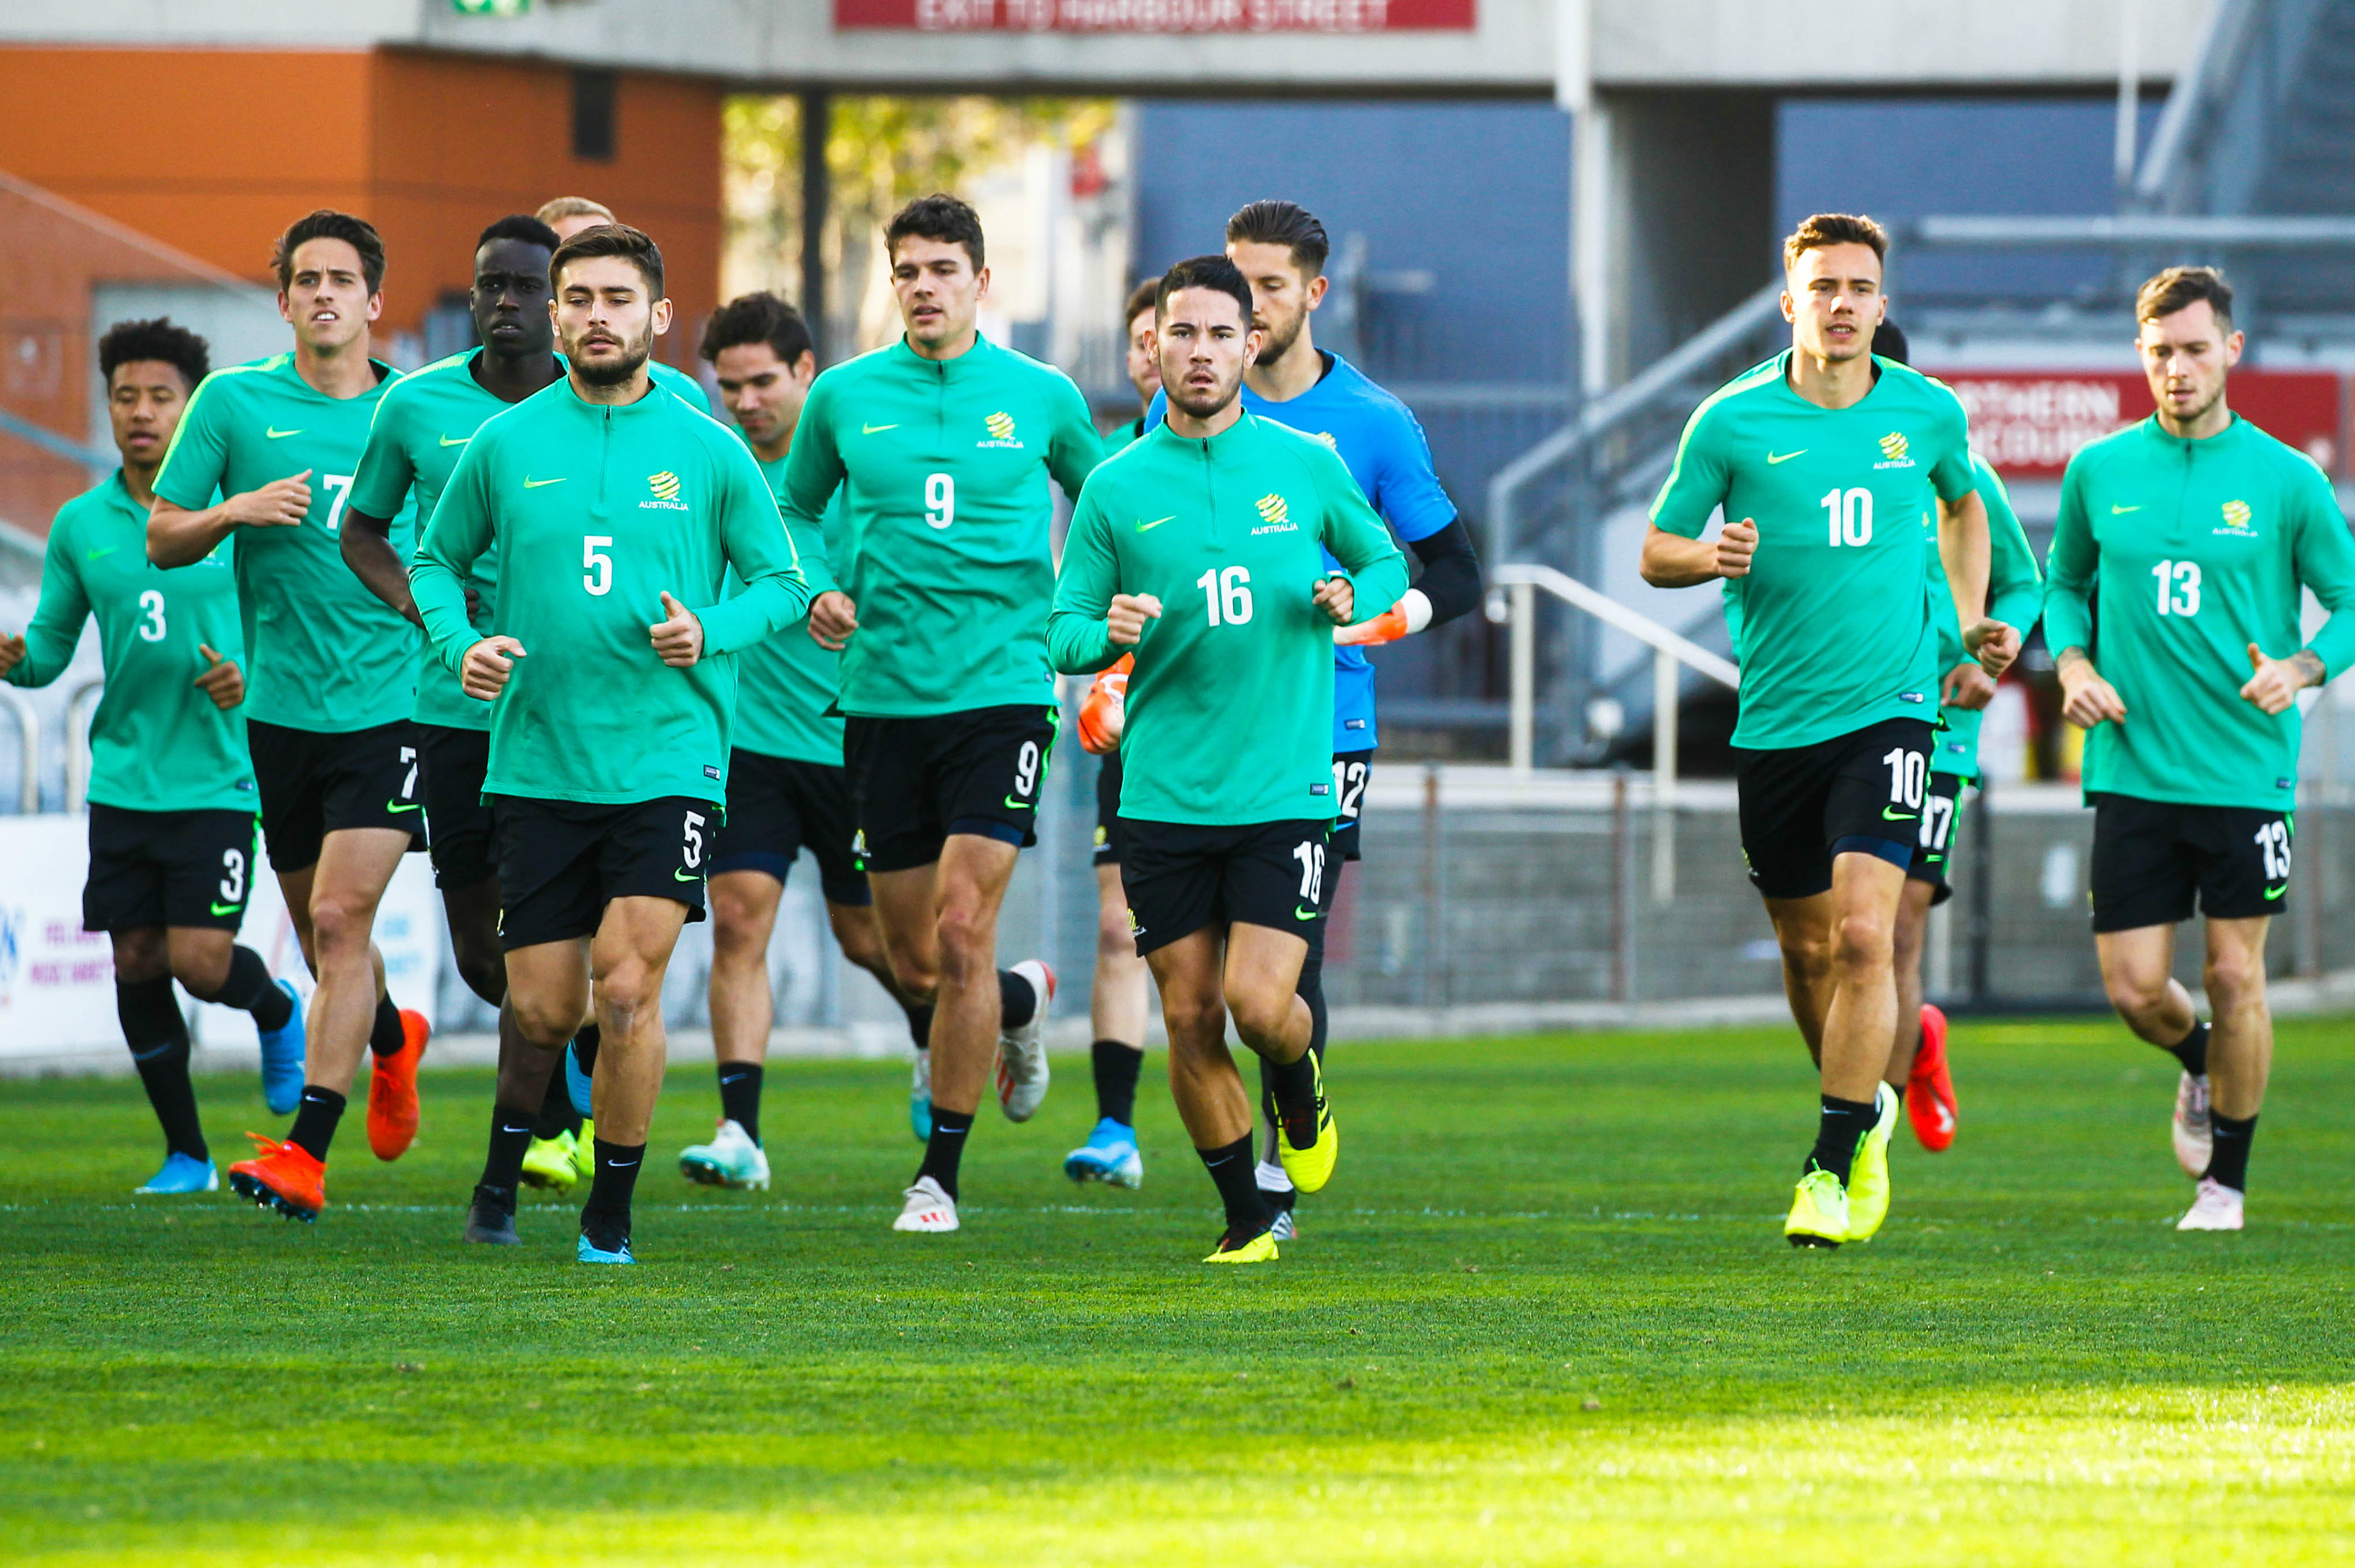 Australia's U-23 squad have been working hard in preparation for the games against New Zealand